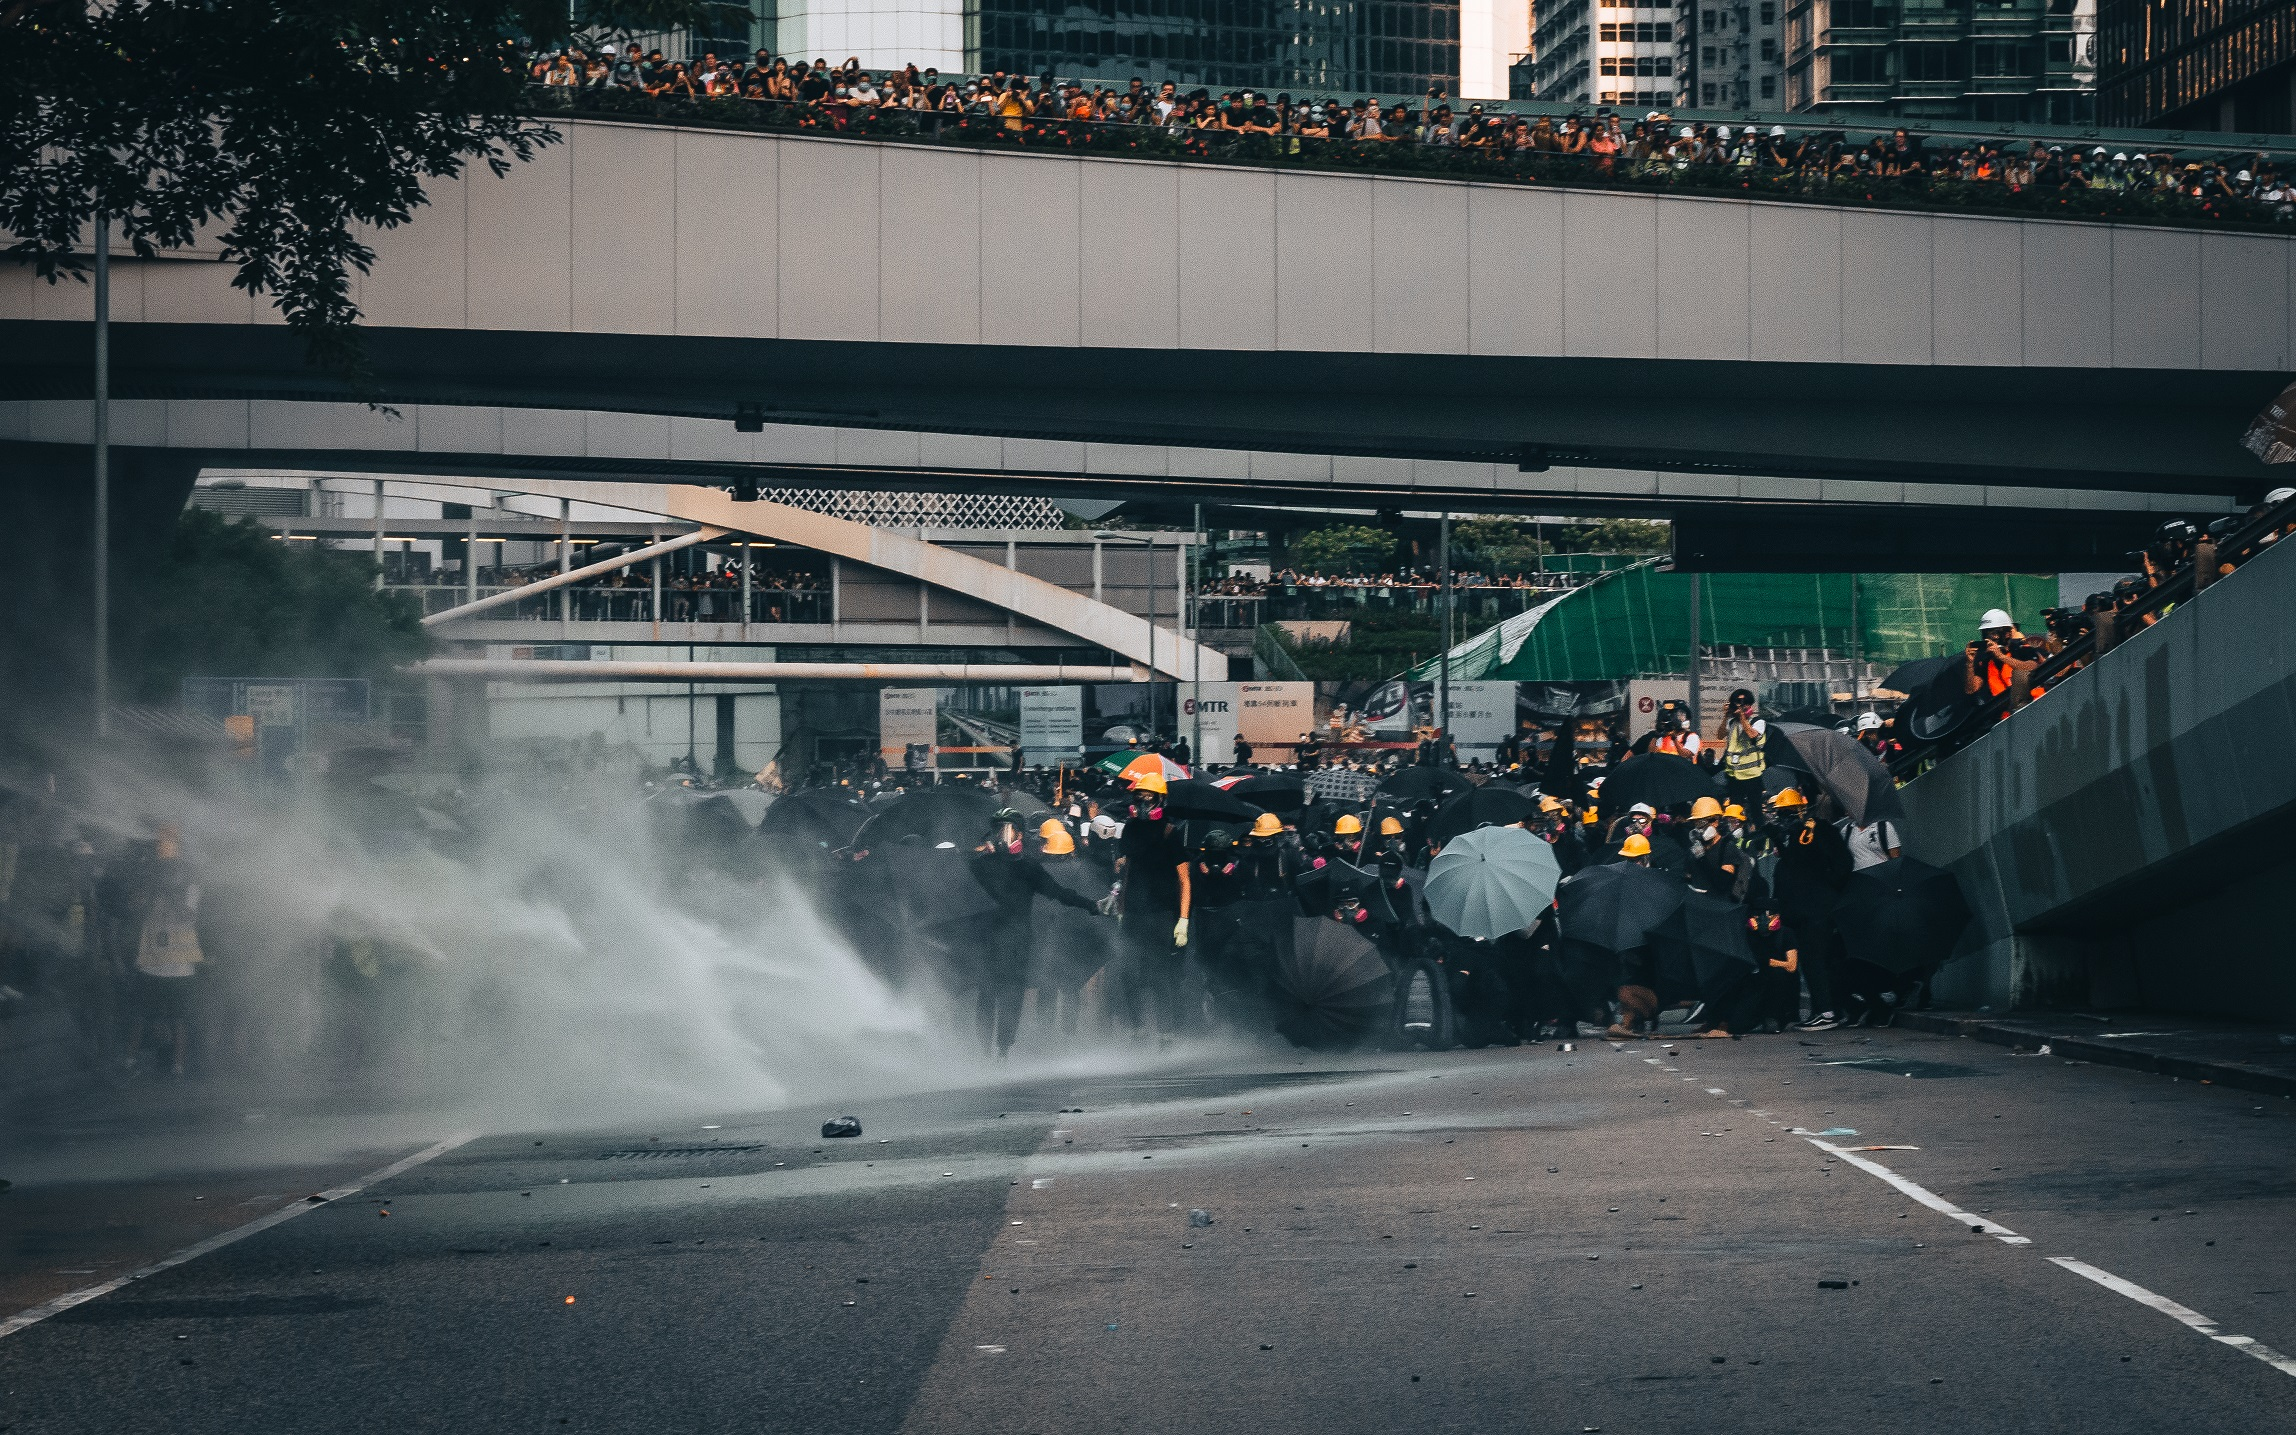 Hong Kong protesters forming an umbrella defense line to shield from water cannons